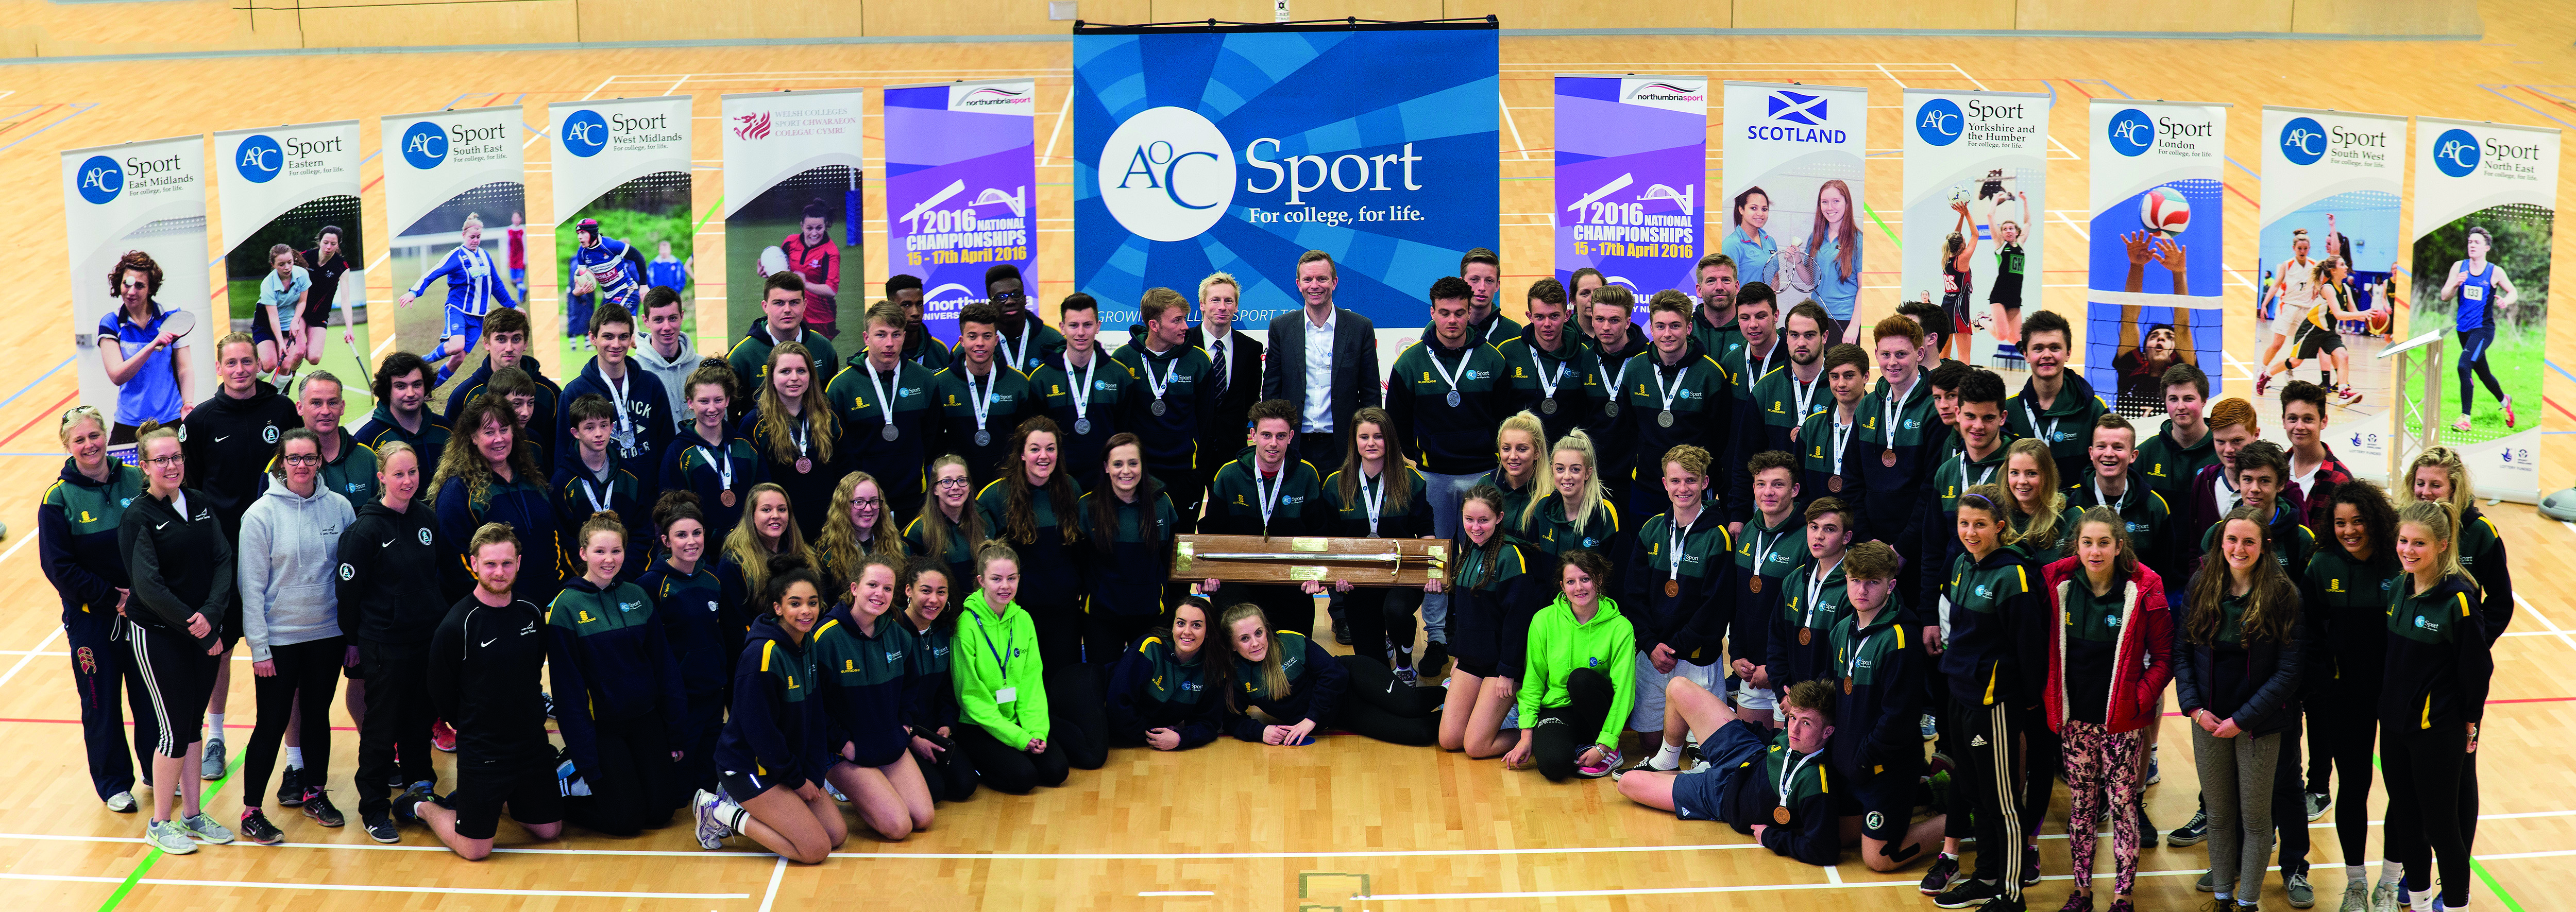 Team South West collecting the Wilkinson Sword at AoC Sport National Championships 2016